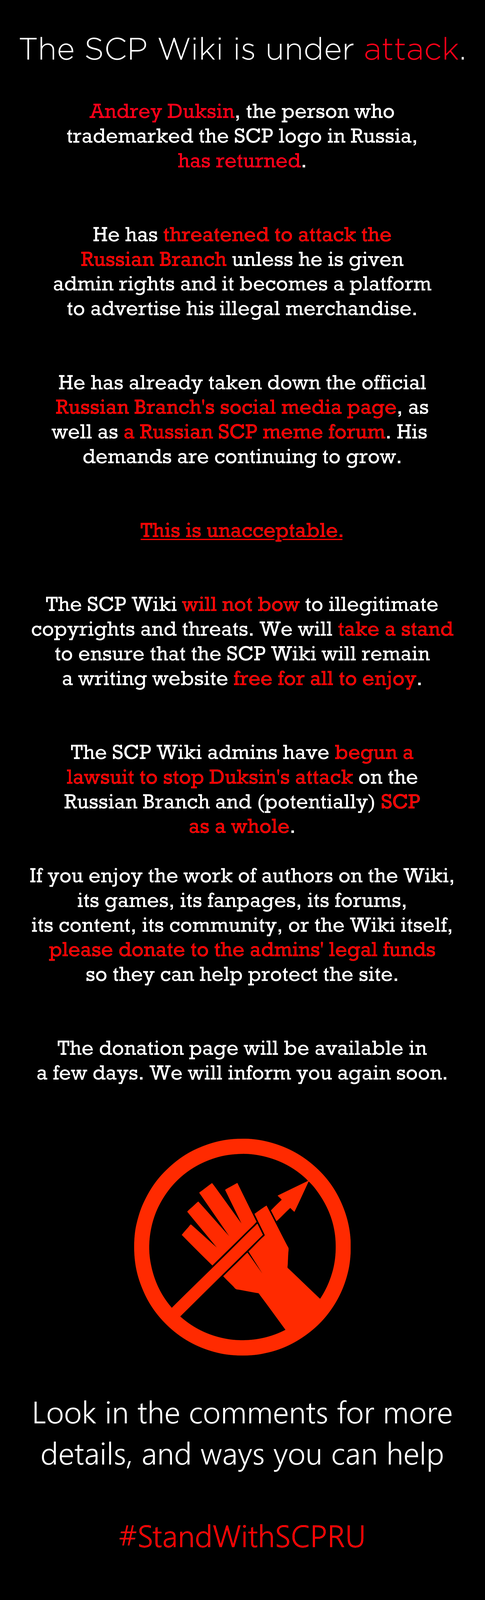 Scp Foundation Know Your Meme Also, the given approximations to the proper definition of thaumiel are the object is vital to the containment of one or more significantly volatile scp objects. scp foundation know your meme